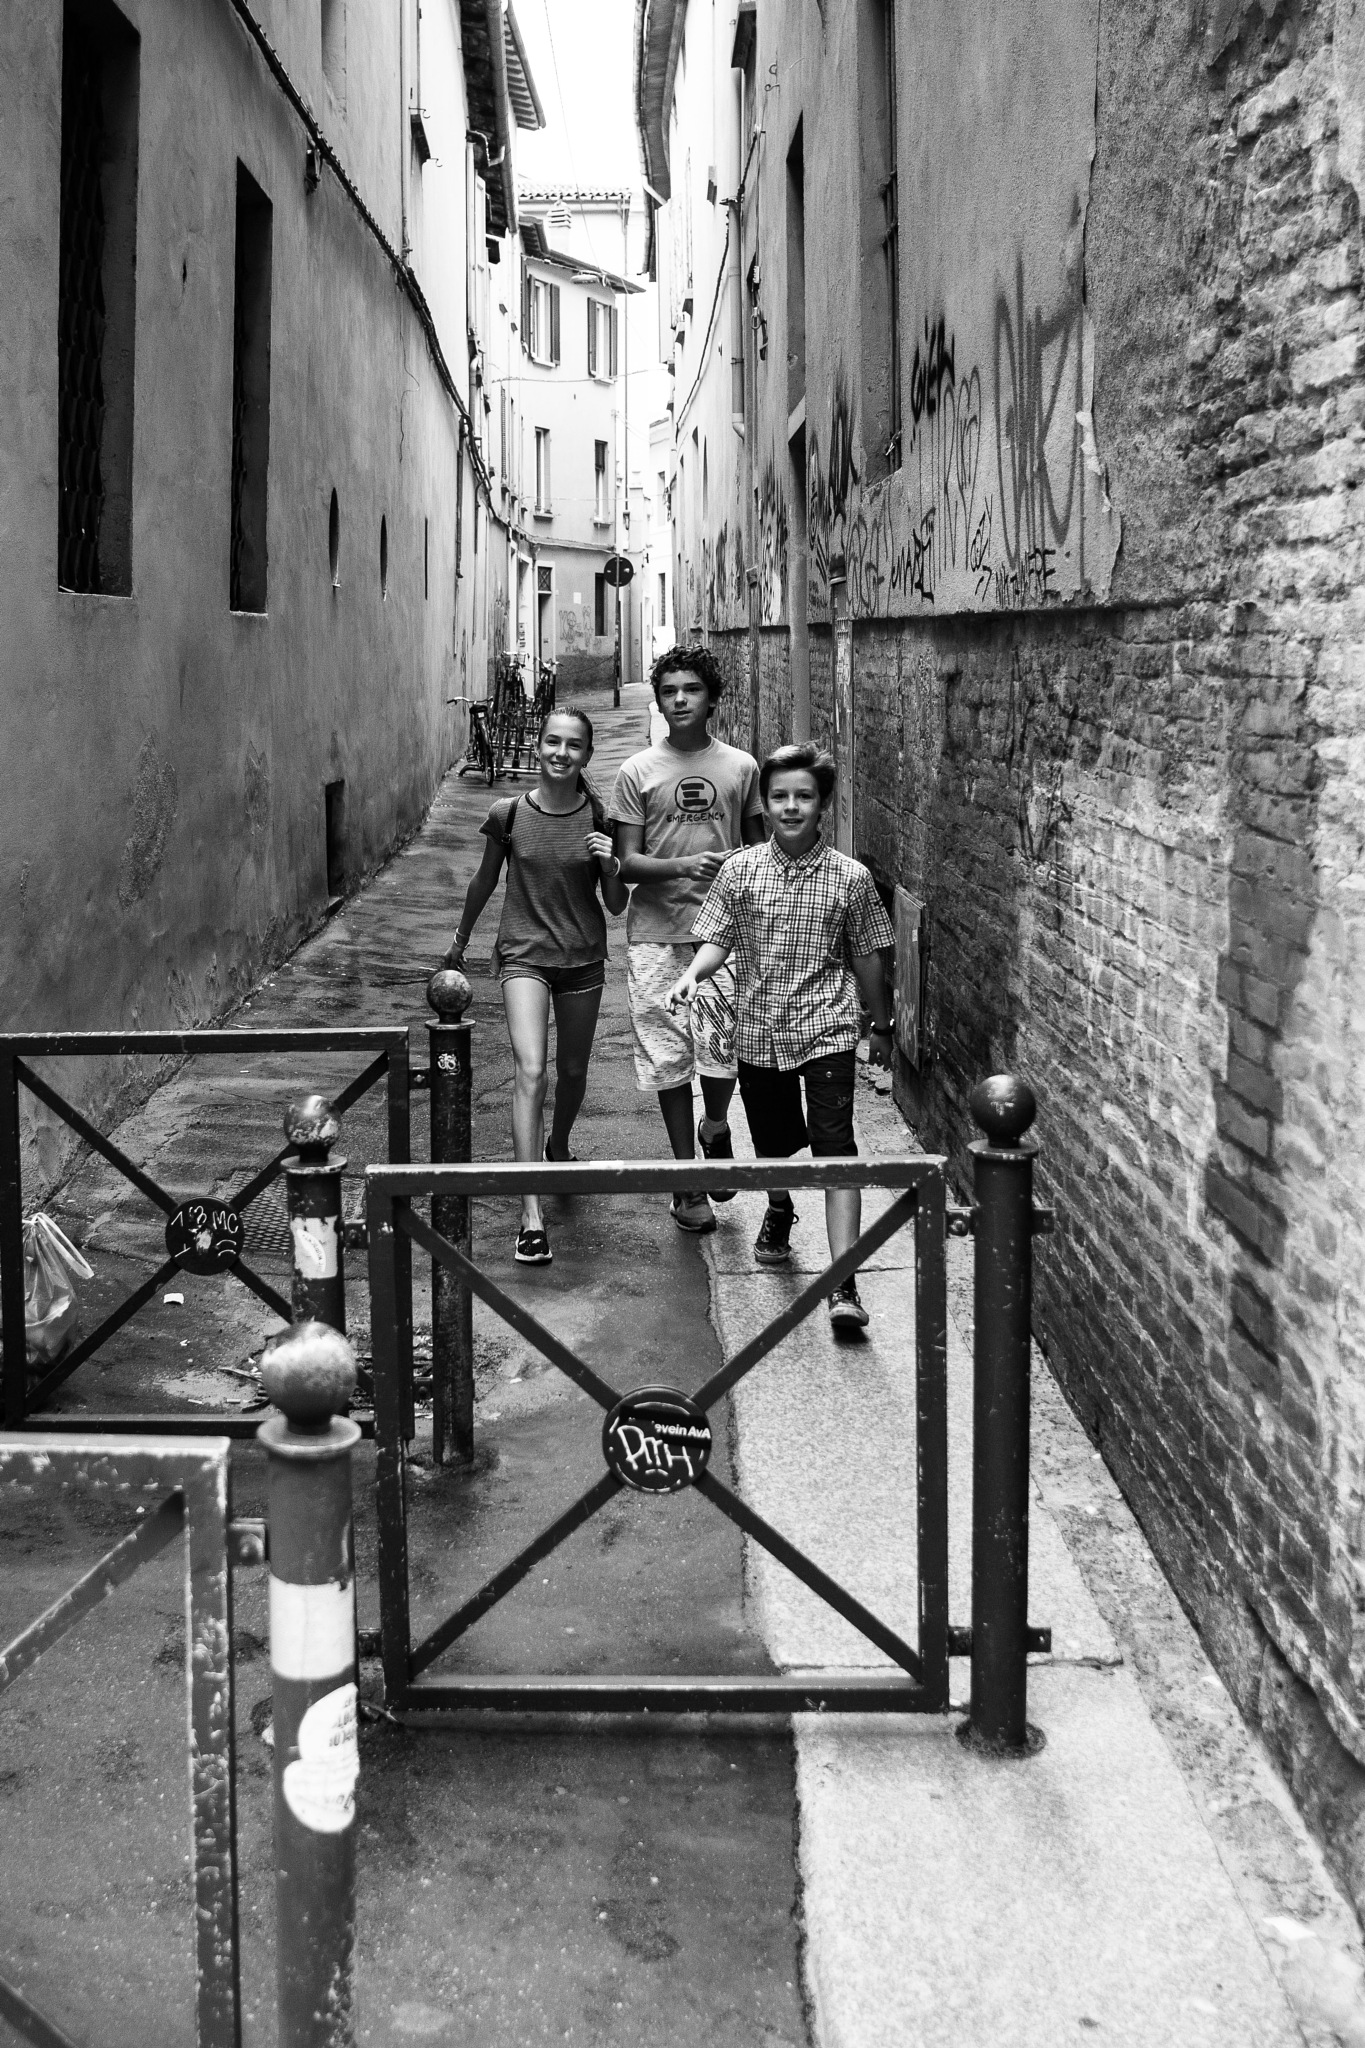 Bologna - kids in alley by tomasogrillini